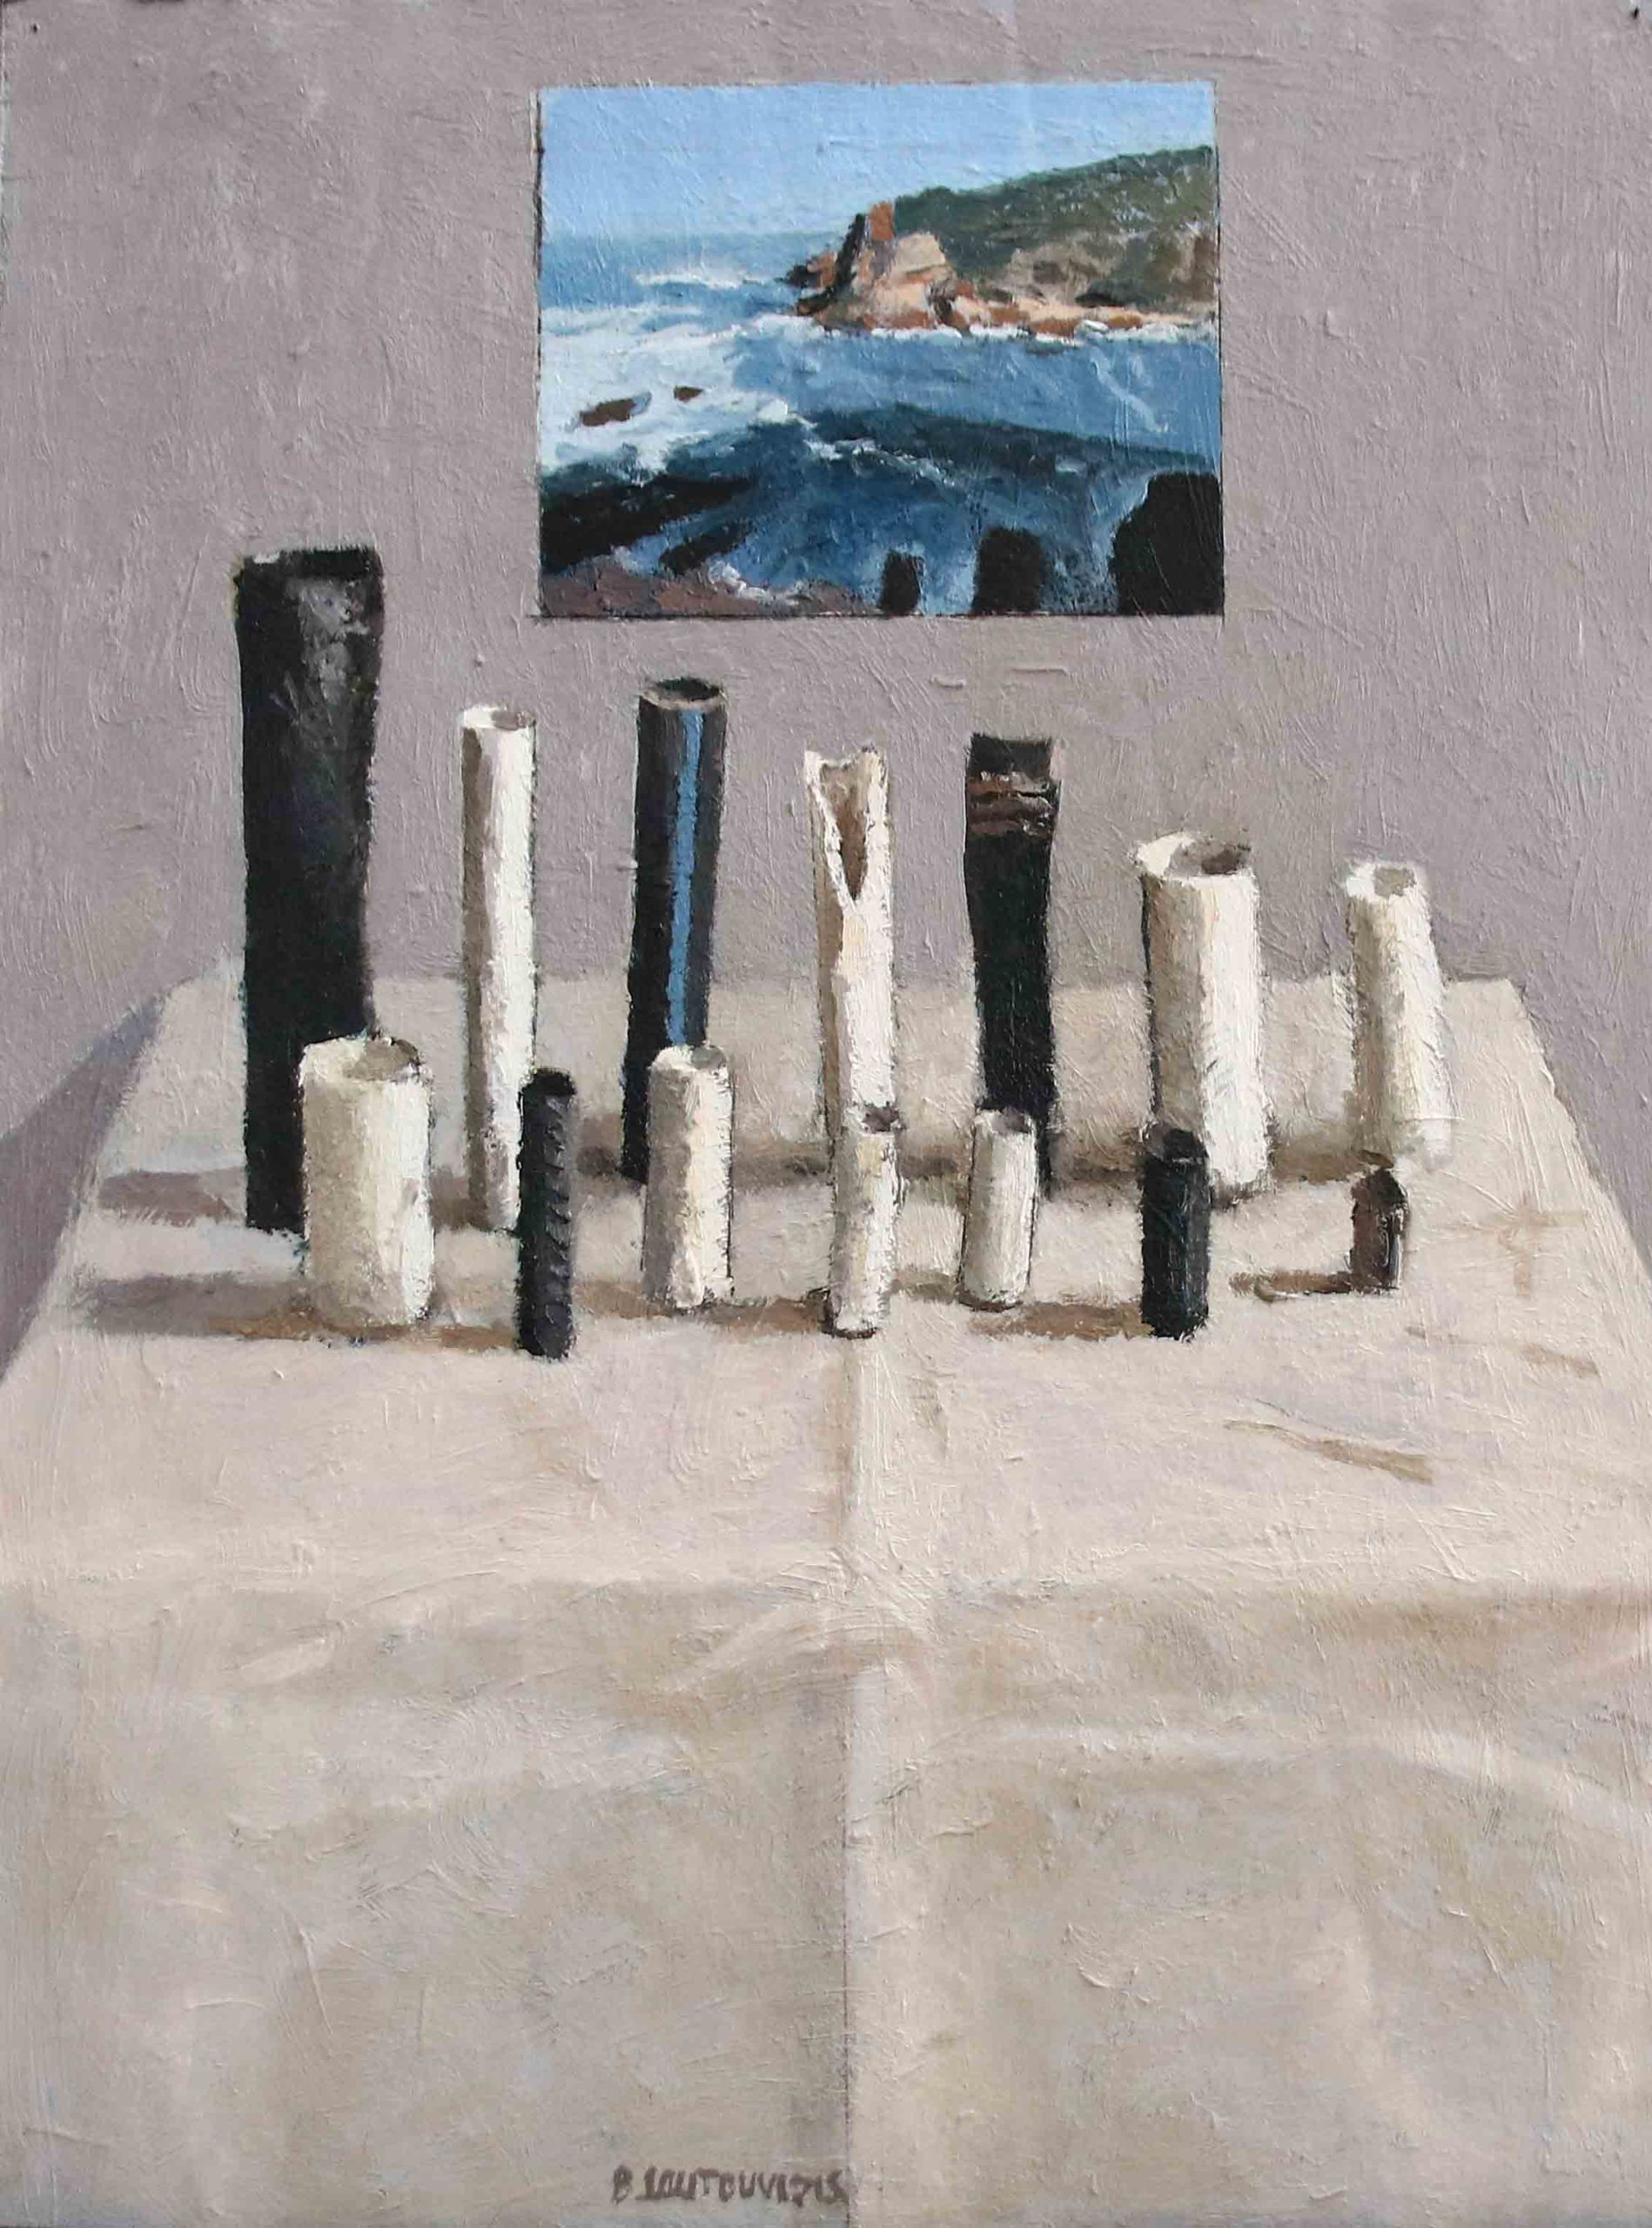 Ben Coutouvidis | Pipes with view of Knysna Heads | 2020 | Eclectica Contemporary | Gallery | Cape Town |